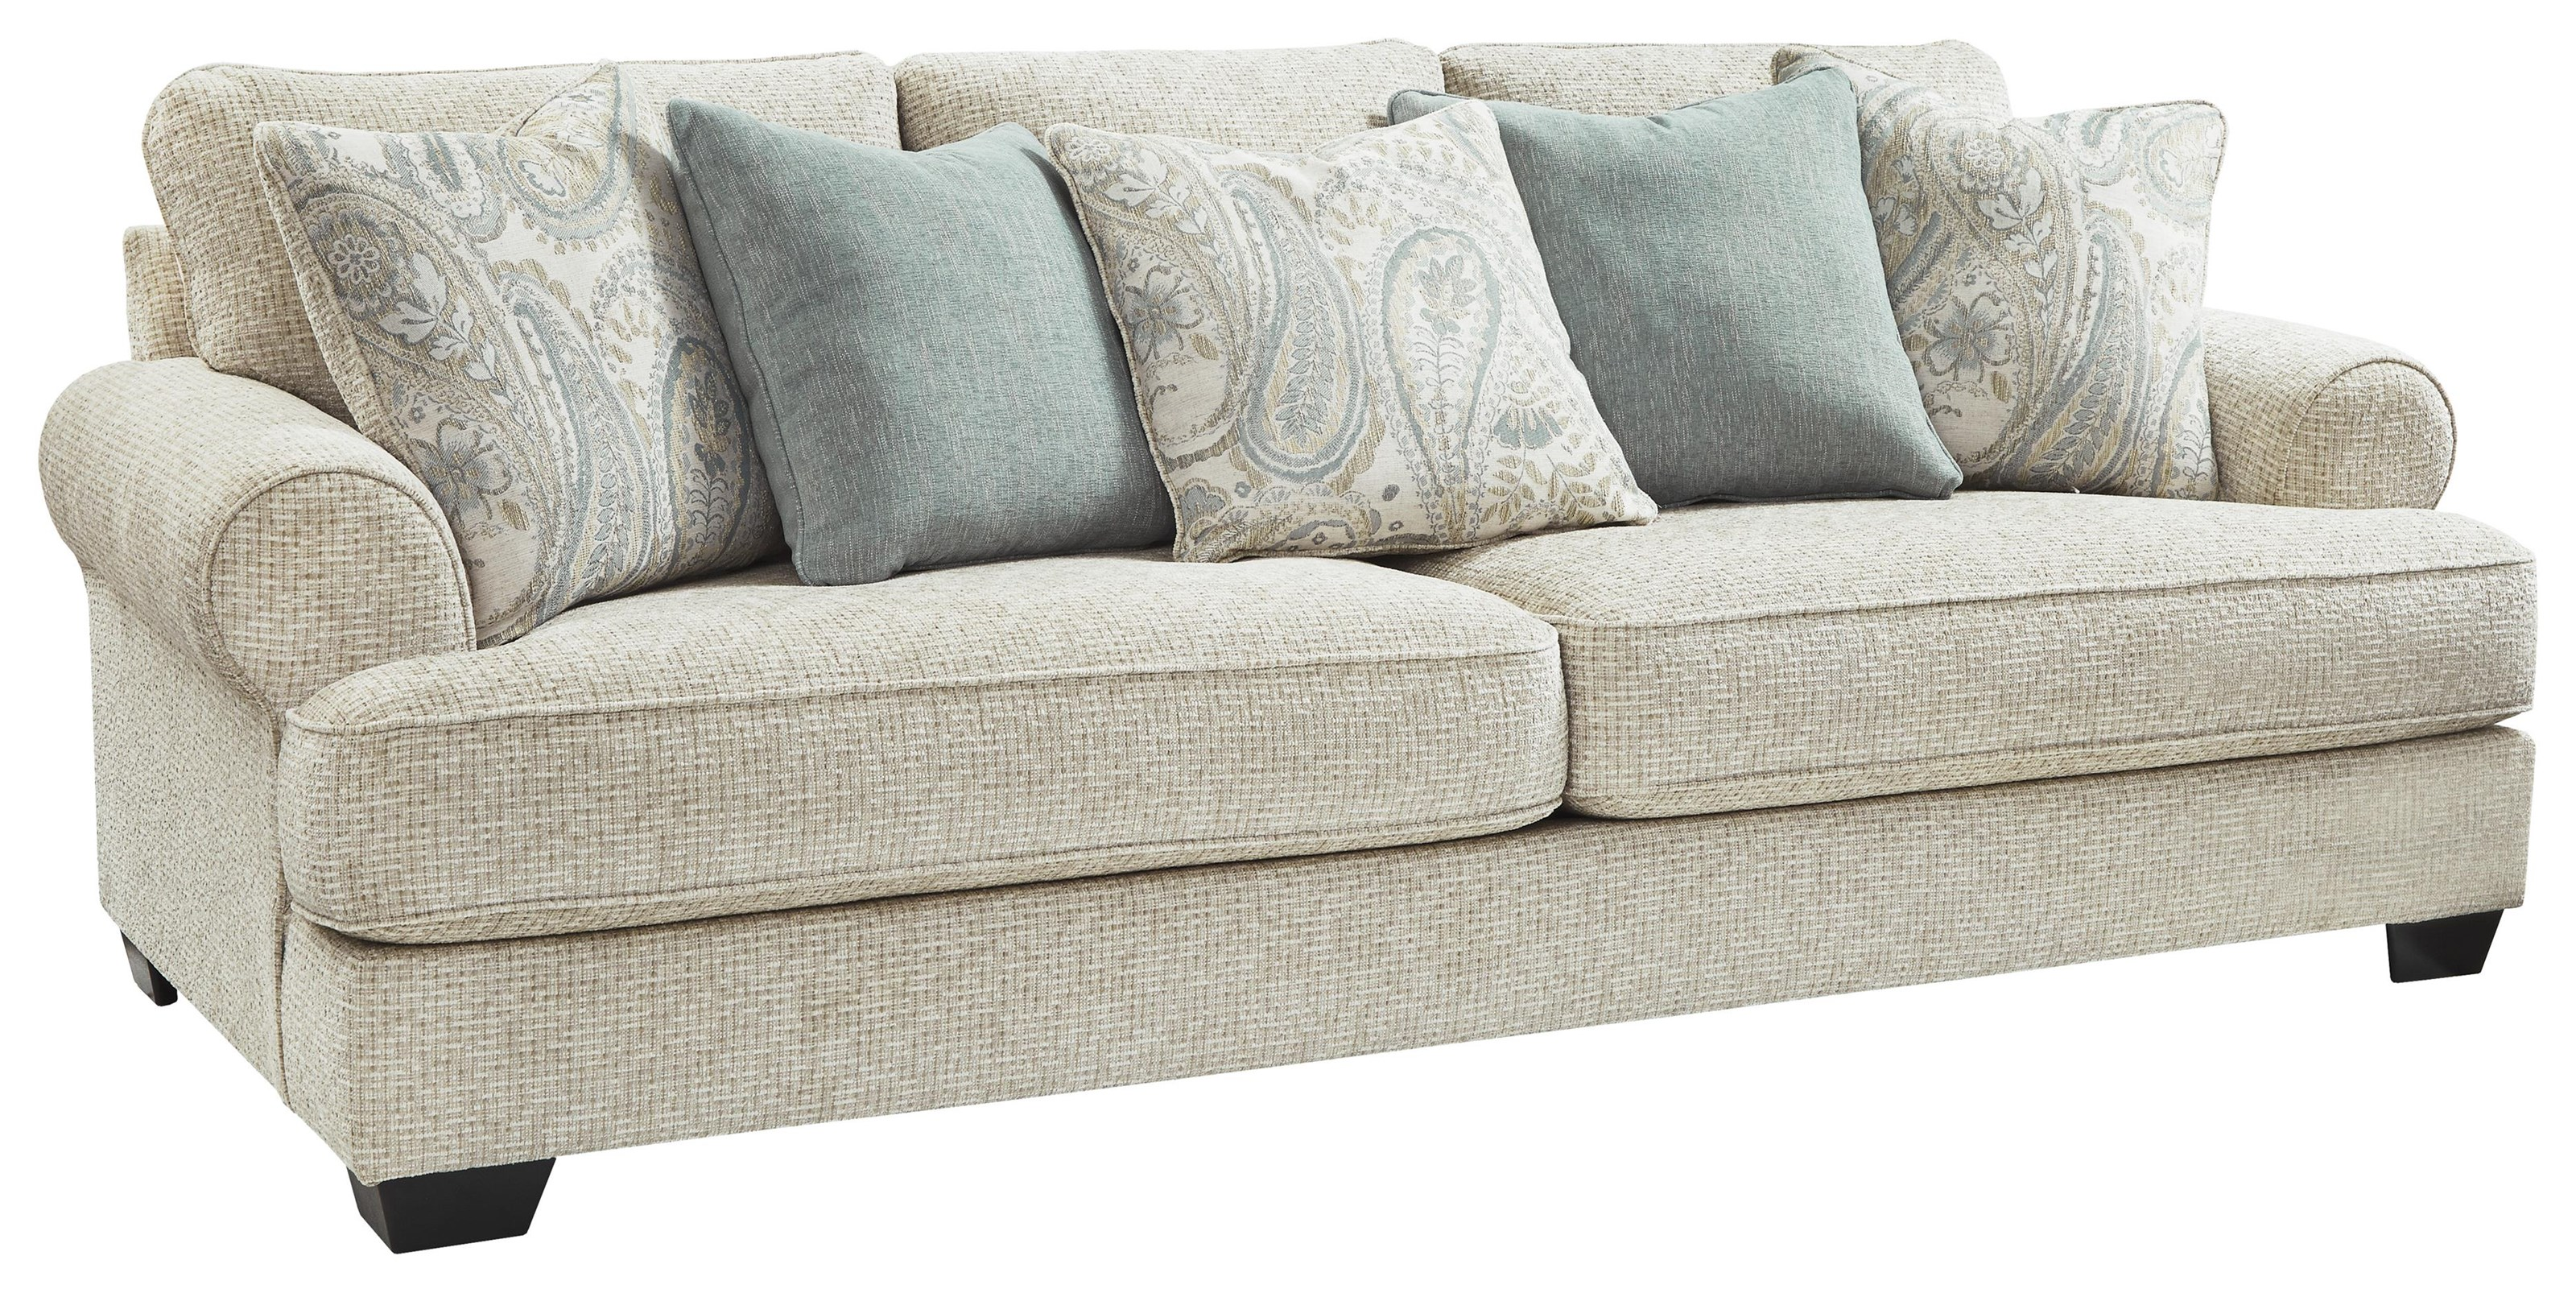 Picture of: Ashley Furniture Monaghan 9620538 Sandstone Sofa Sam Levitz Outlet Sofas